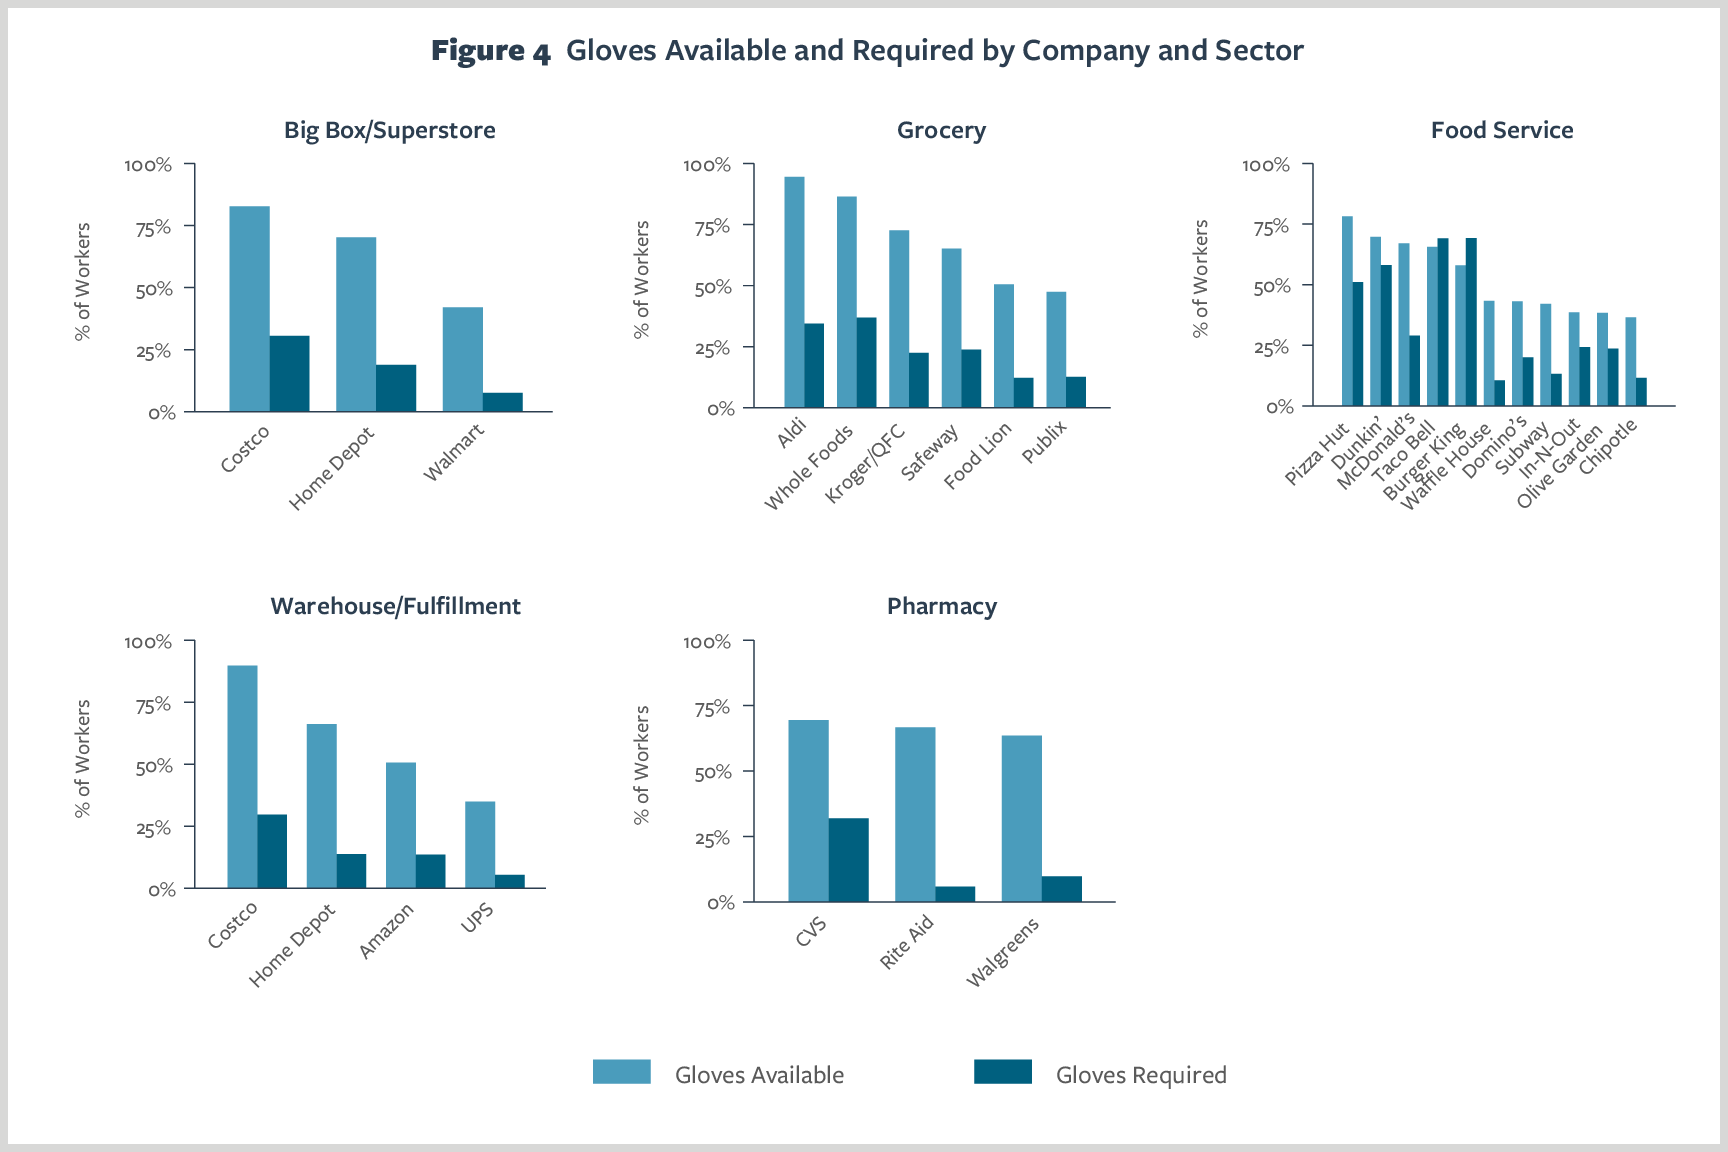 Figure 4. Gloves Available and Required by Company and Sector